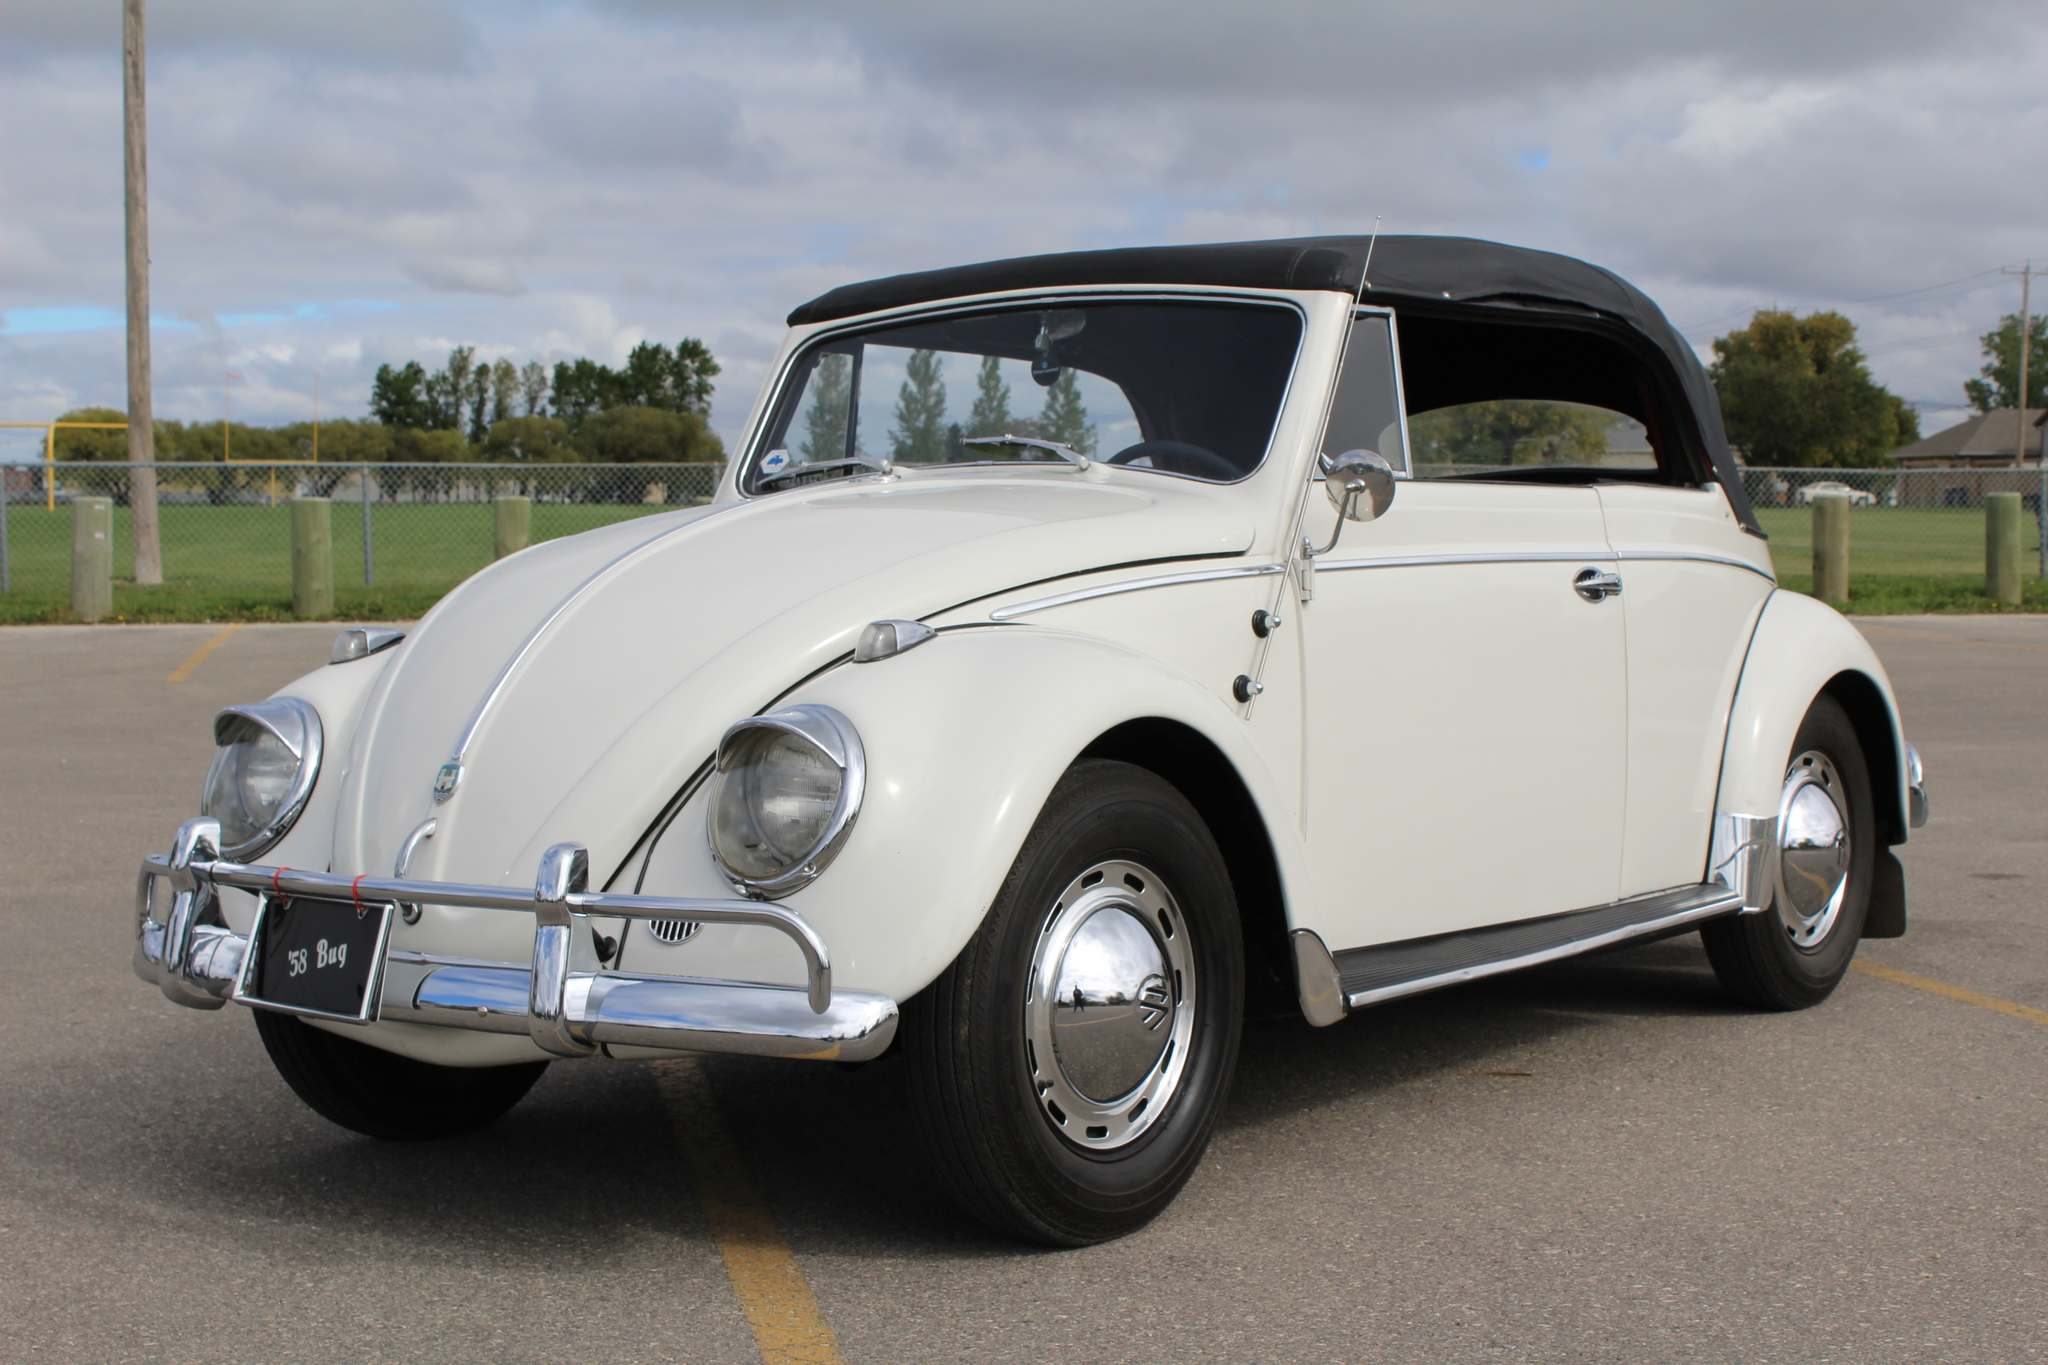 The Beetle stands above many other classic vehicles due to its reliability.